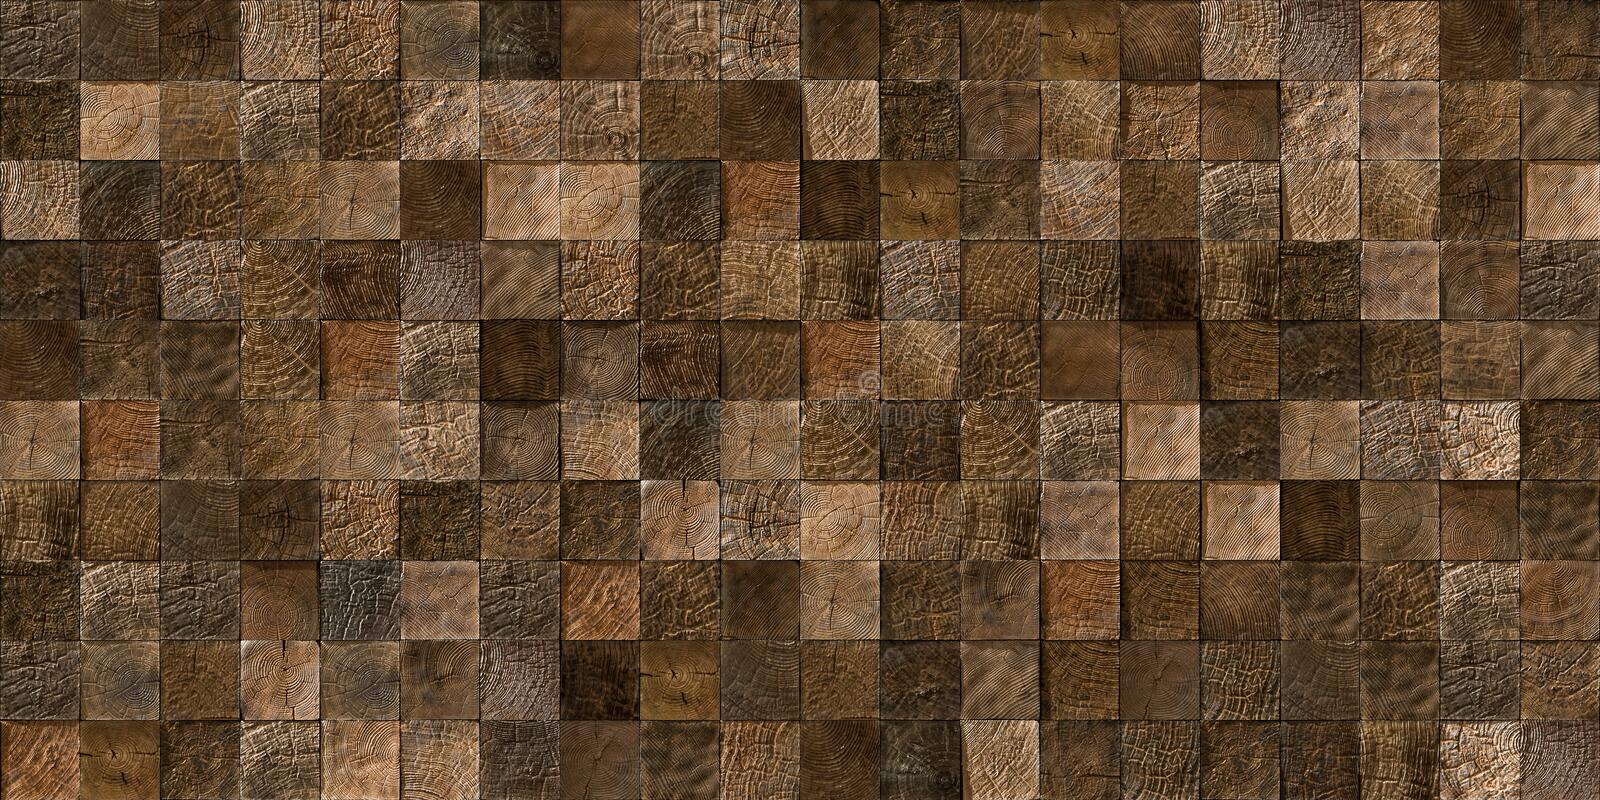 Wood tiles seamless texture. A seamless texture of log ends tiles, showing the natural grain of the wood. The decorative panel made from a natural material used